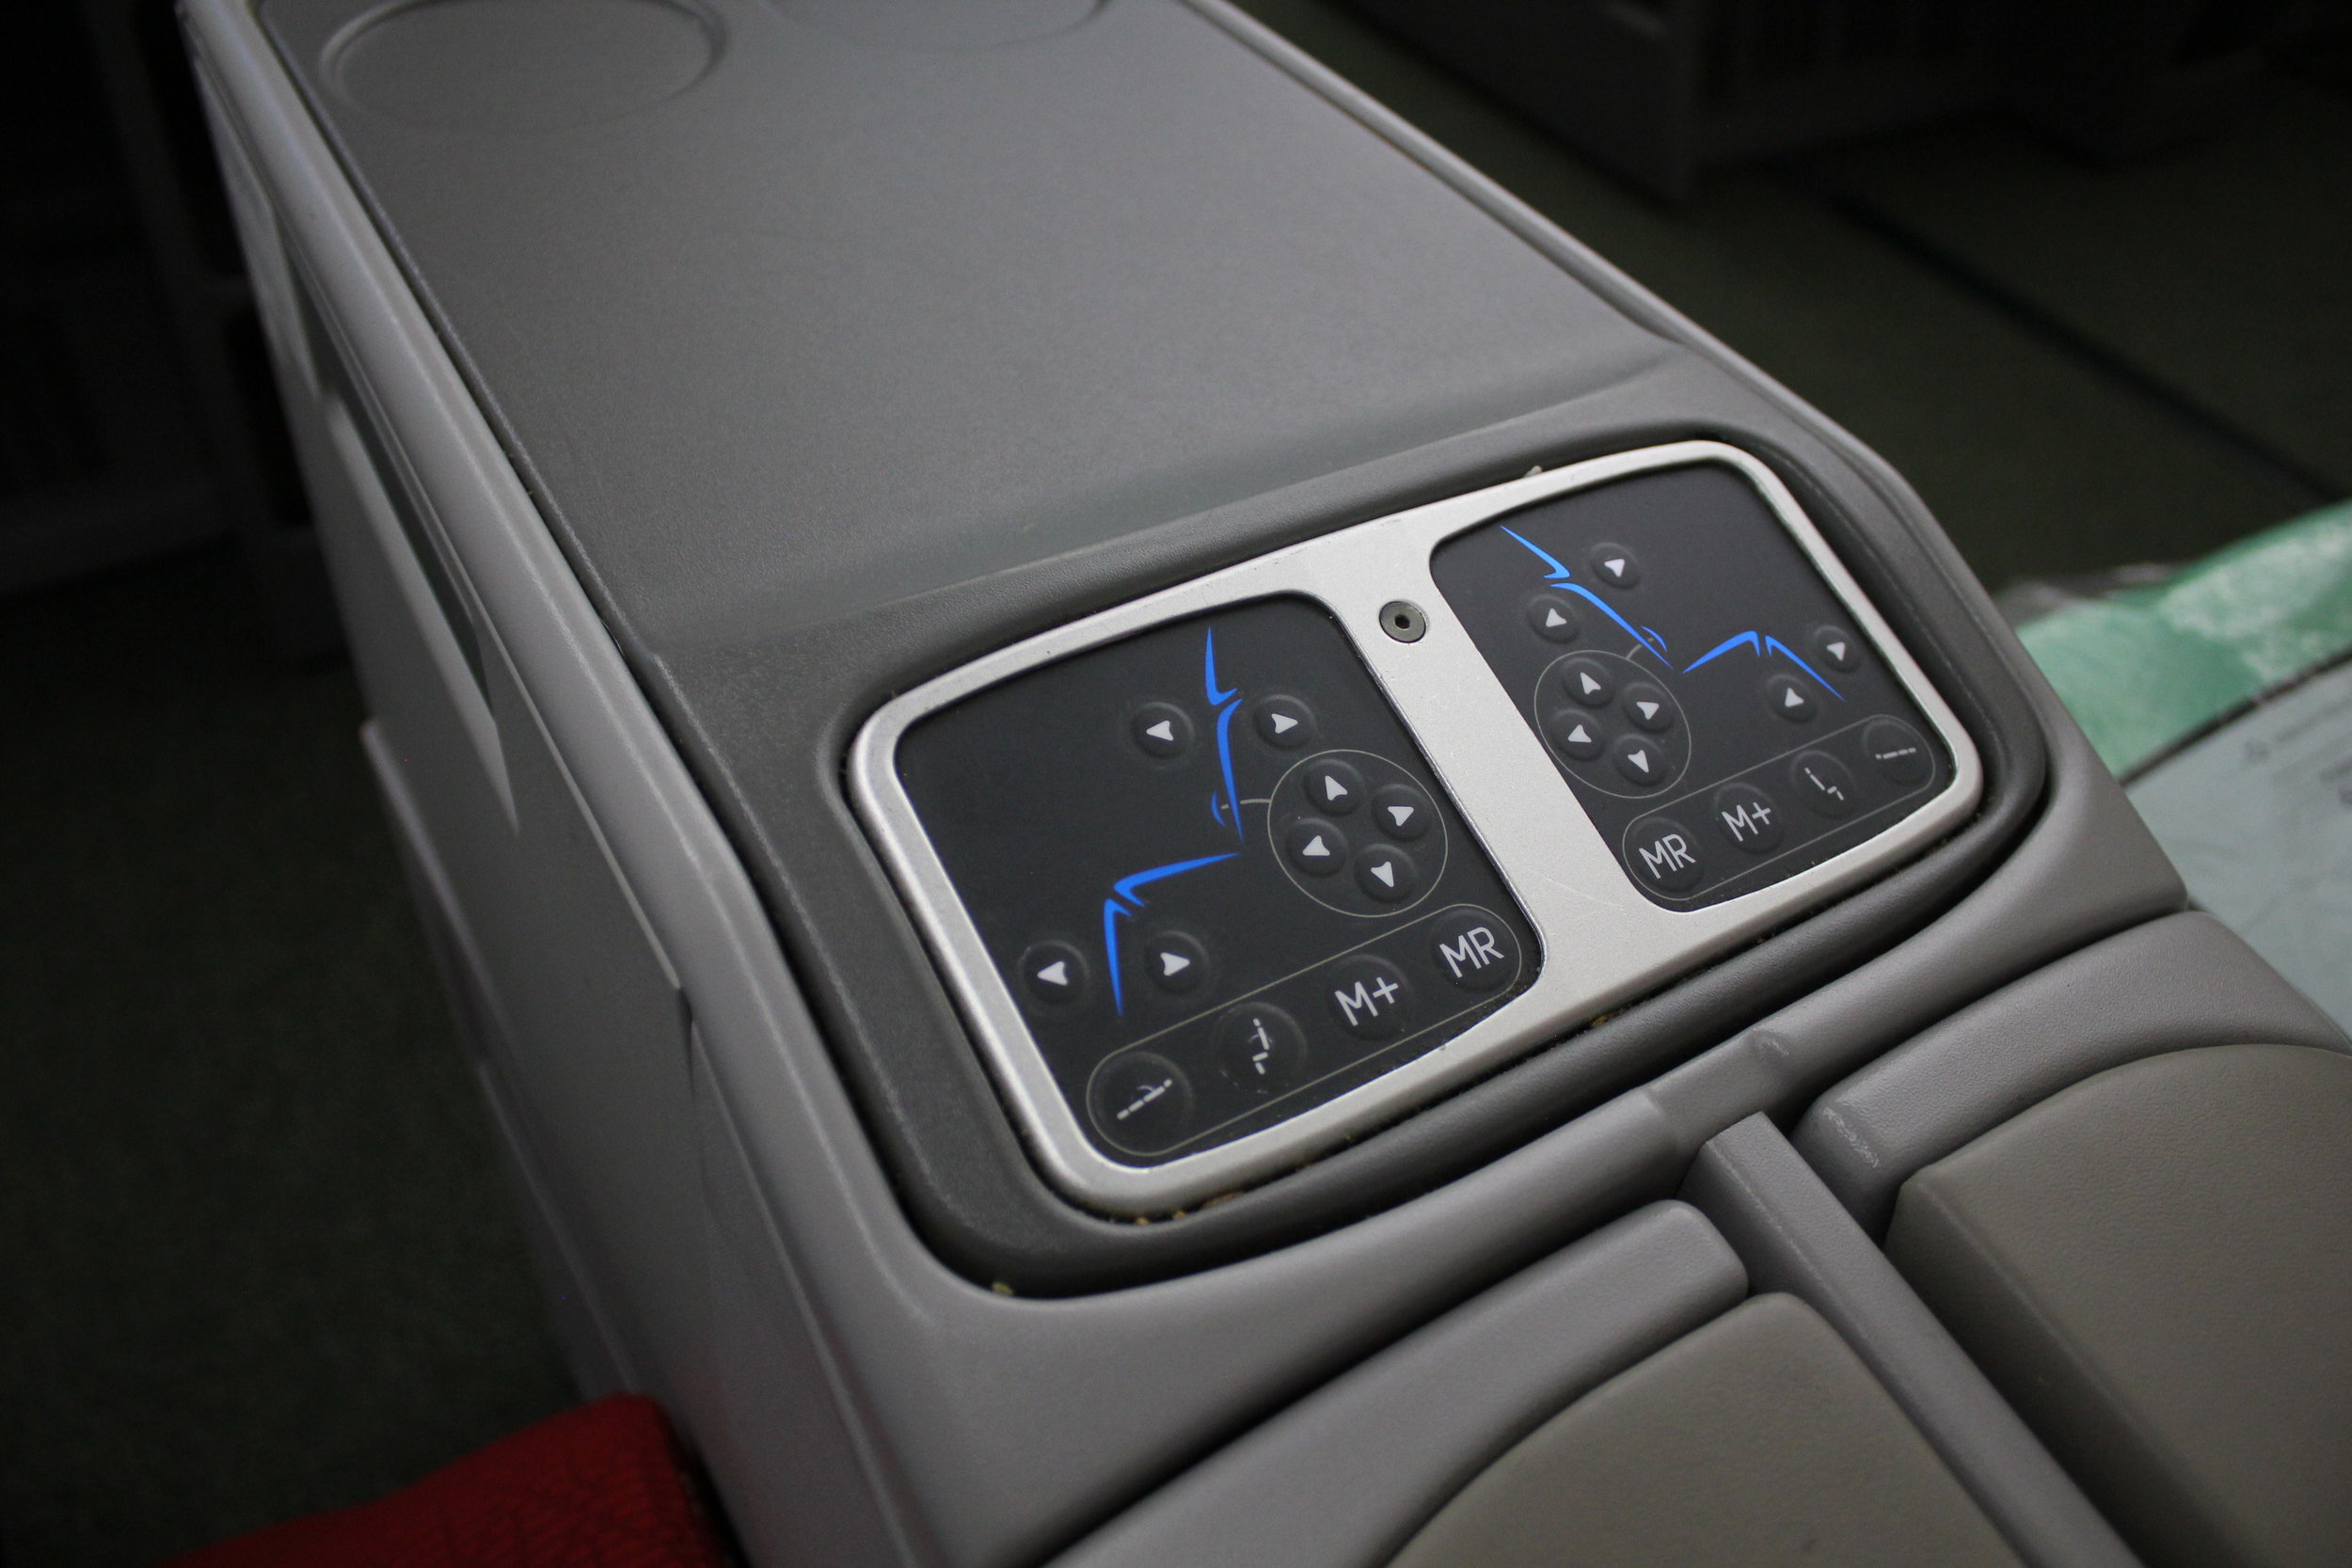 Ethiopian Airlines business class – Seat controls